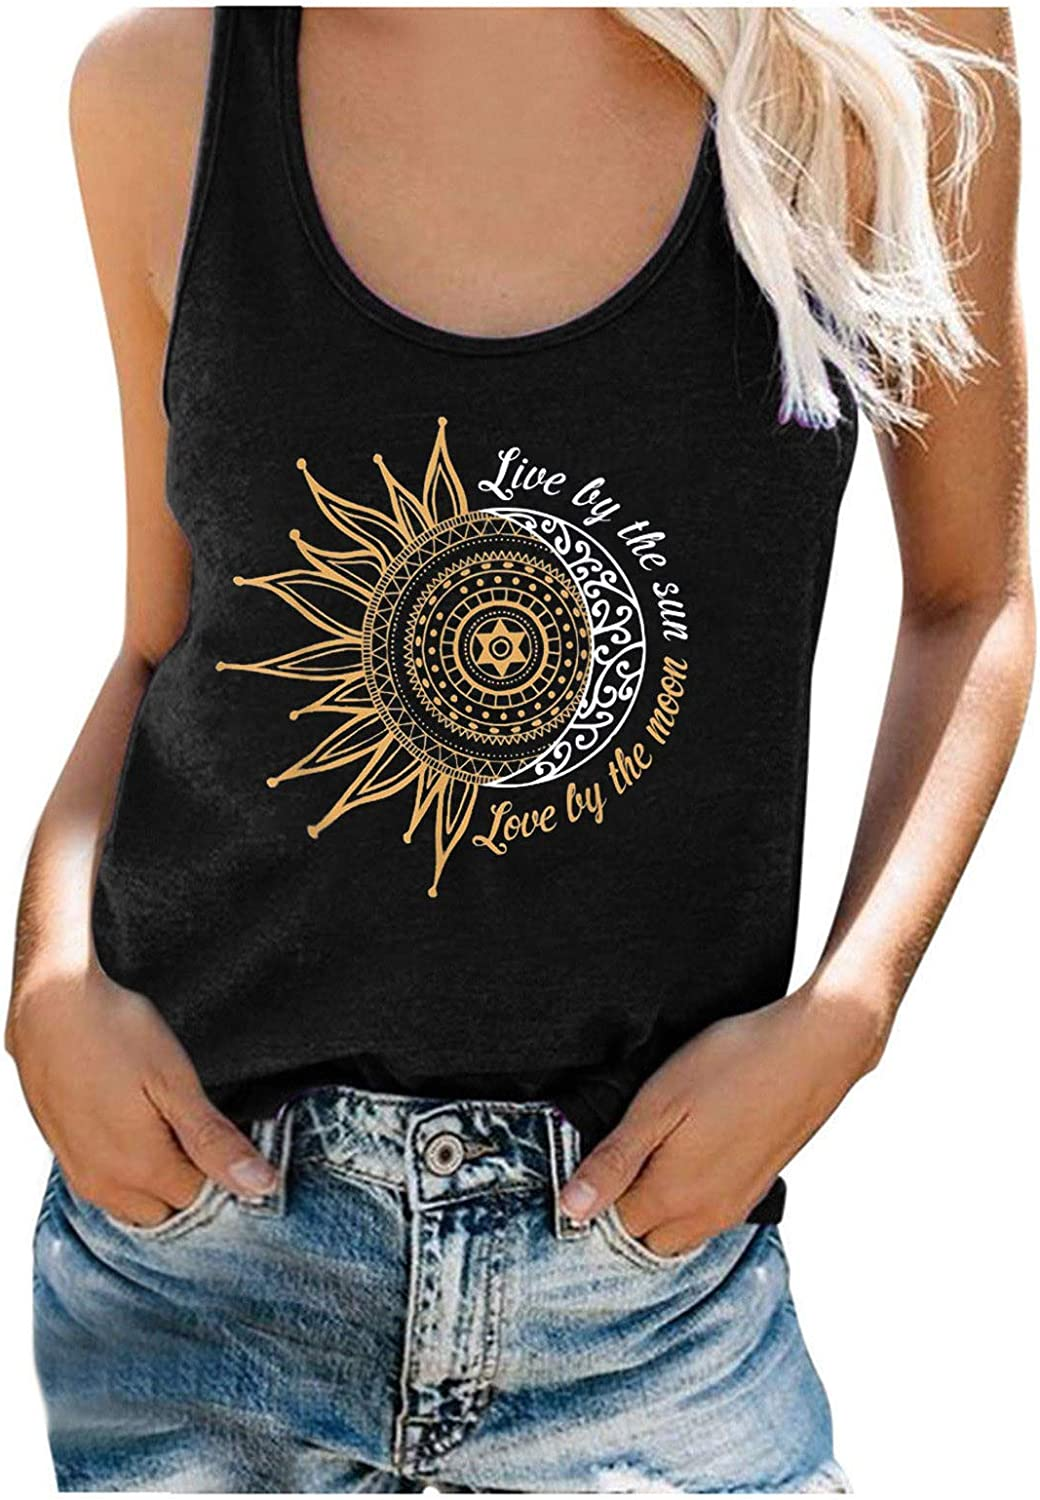 AODONG Tank Tops for Women, Fashion Womens Casual Summer Loose Fit Sleeveless Tank Tees Shirts Blouses Vest Tops